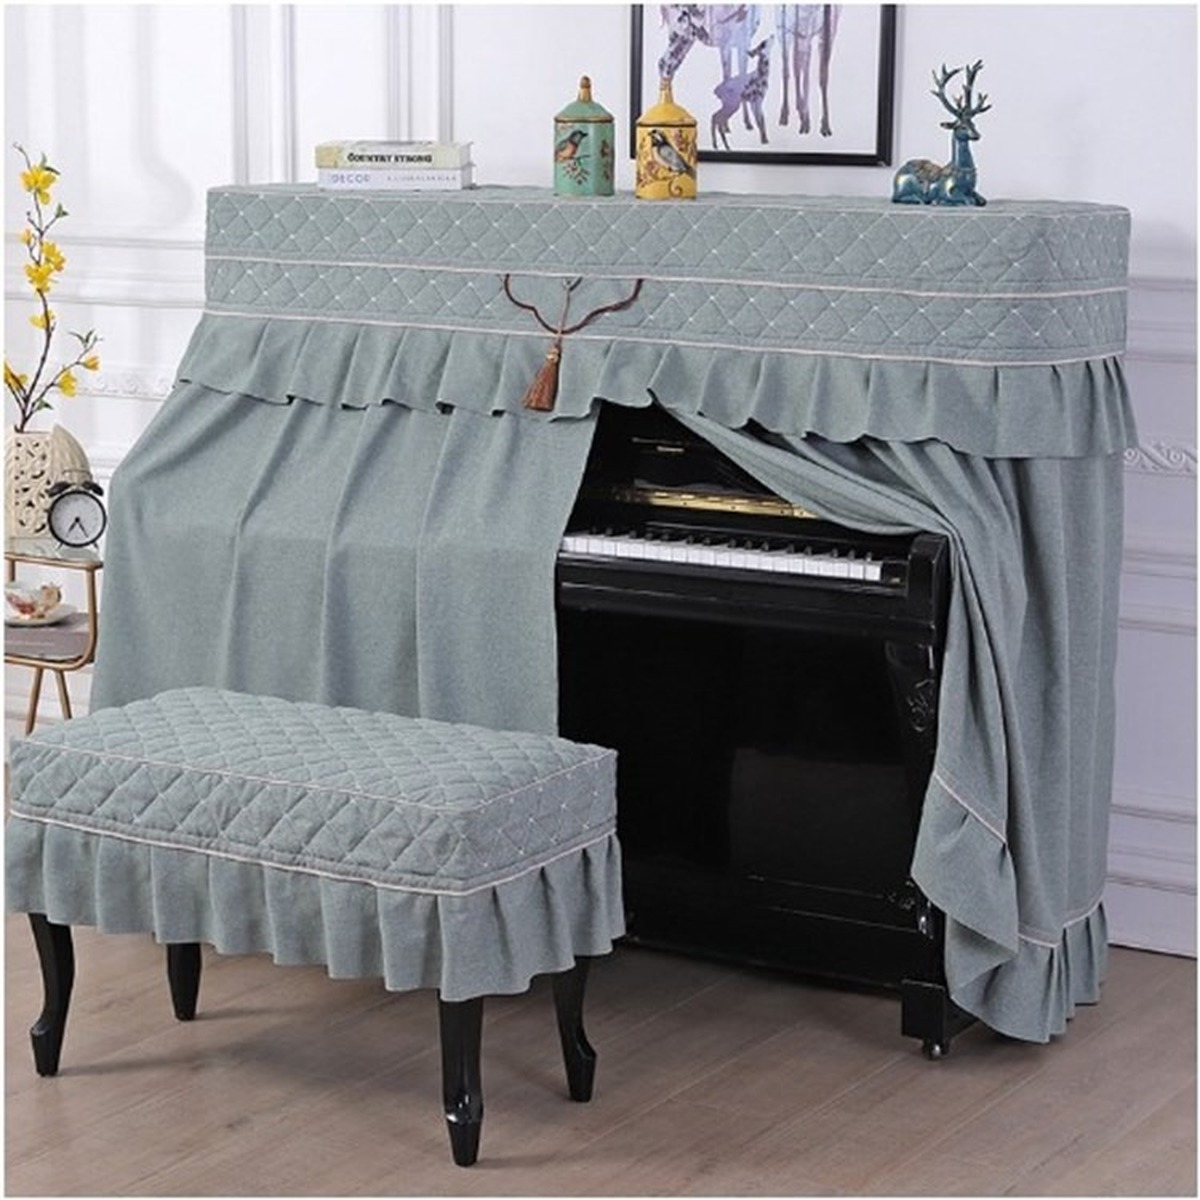 North European Cotton Linen Cloth Dust Cover Solid Color Piano Cover Full Cover Half Open Style Piano Bench Cover  4 colors.